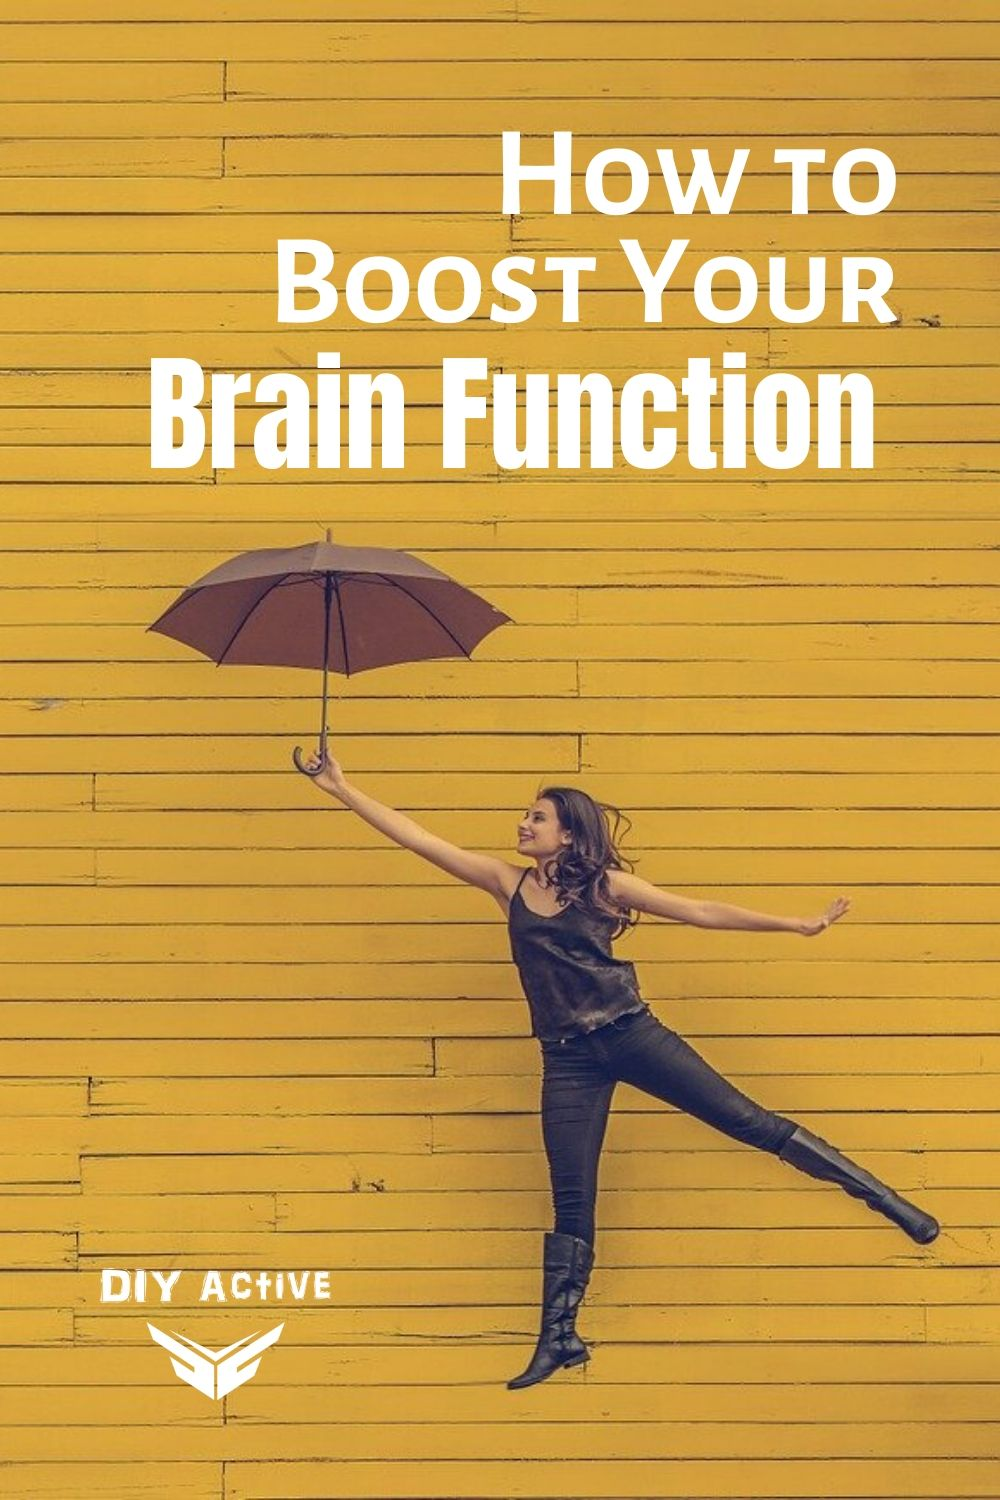 How to Boost Your Brain Function Starting Today